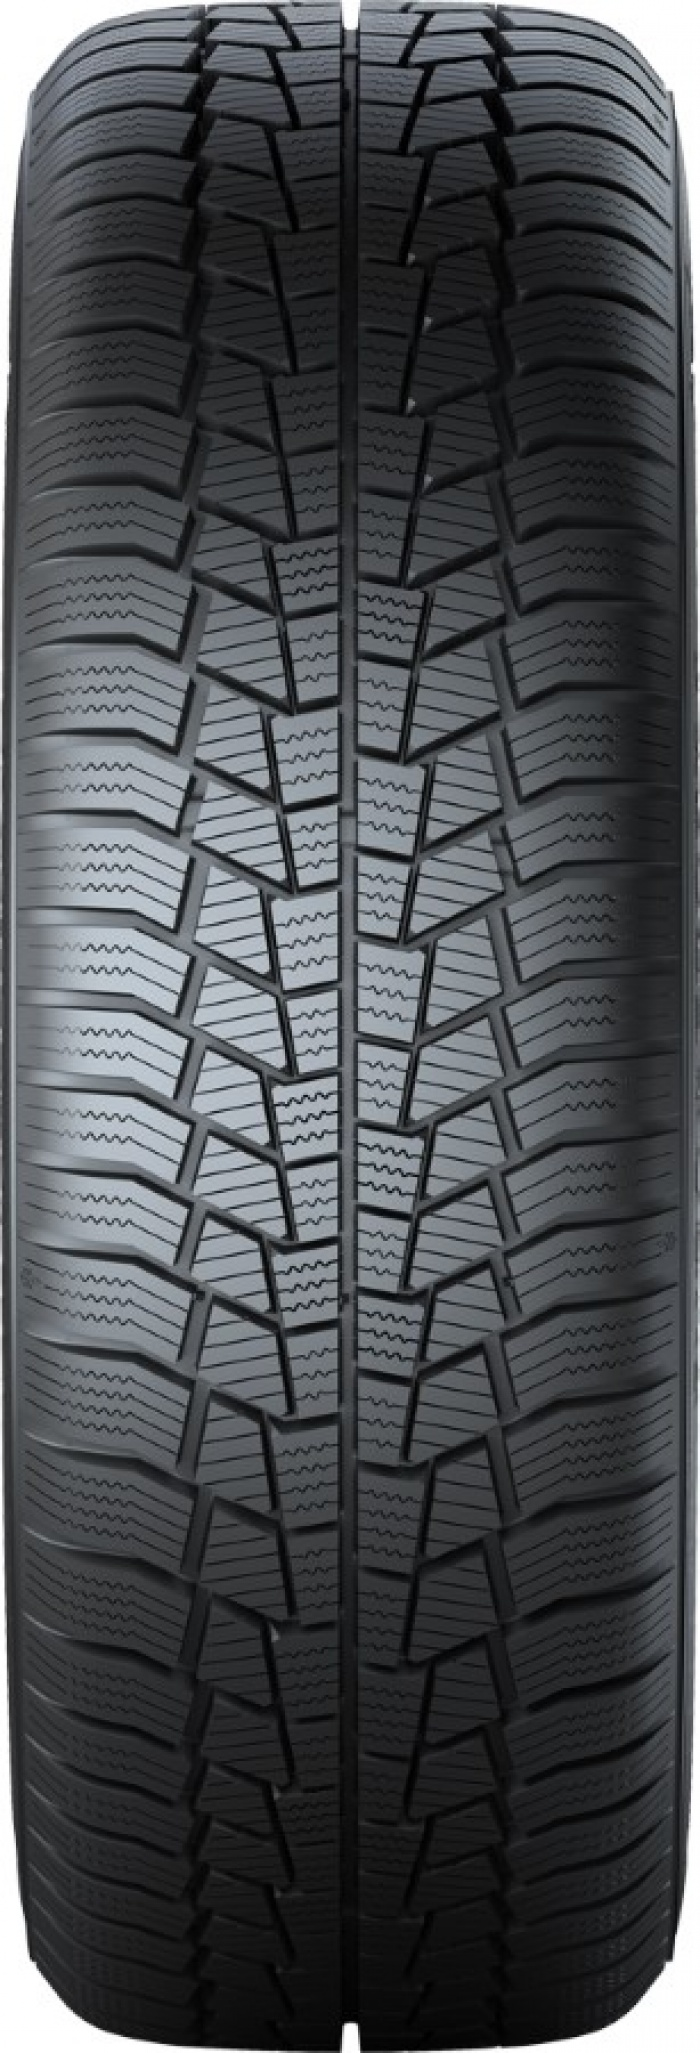 Gislaved Euro Frost 6 205/55 R16 91T  не шип